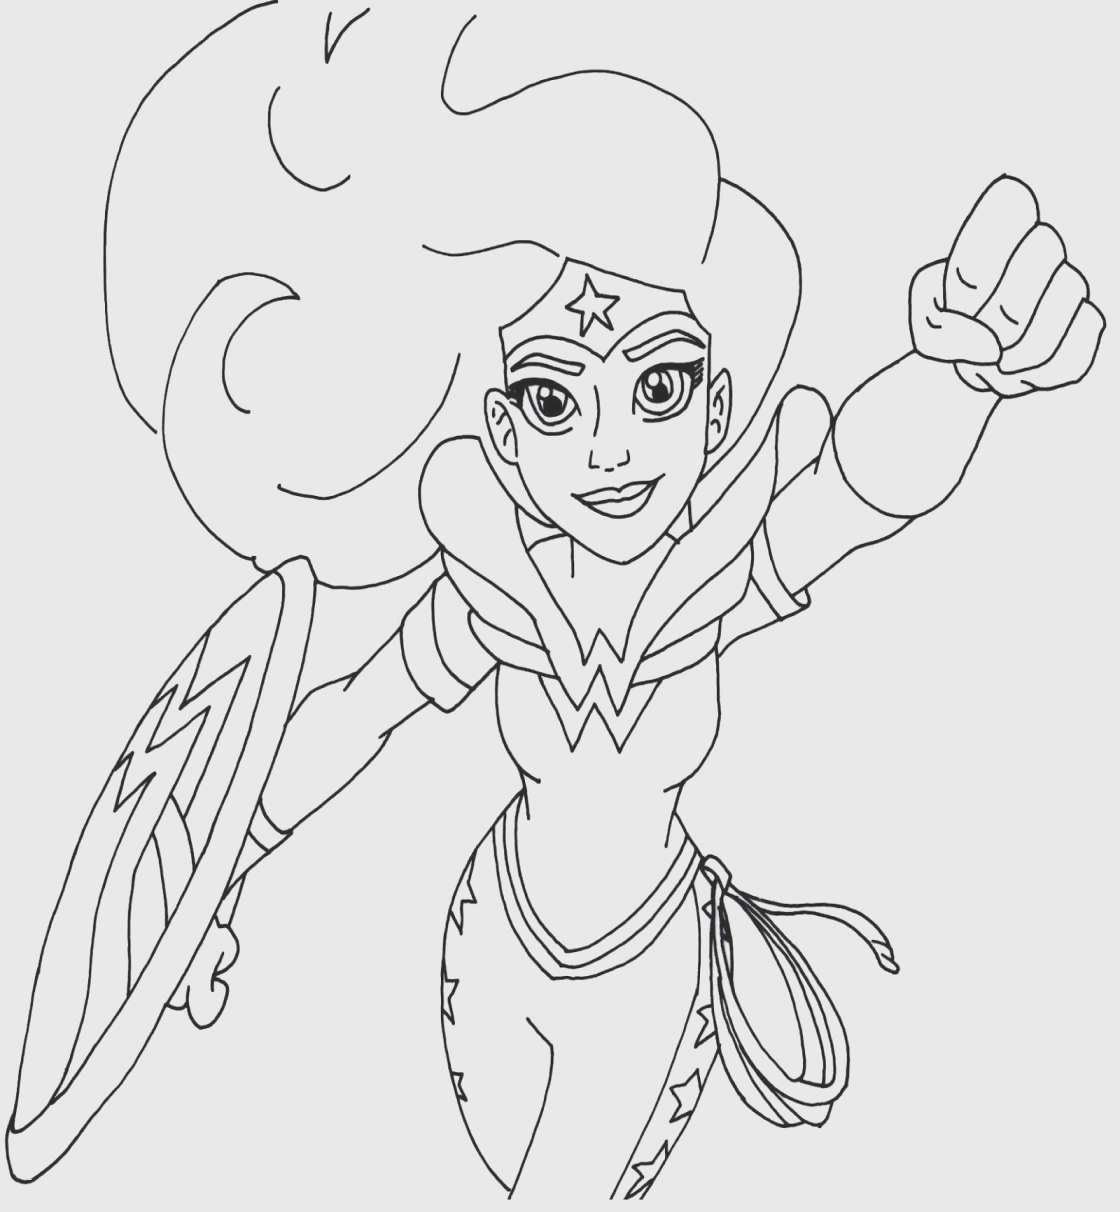 Number One Coloring Sheets Inspirational Spiderman Coloring Pages Printable Superheroes Easy Superhero Coloring Pages Superhero Coloring Mermaid Coloring Pages